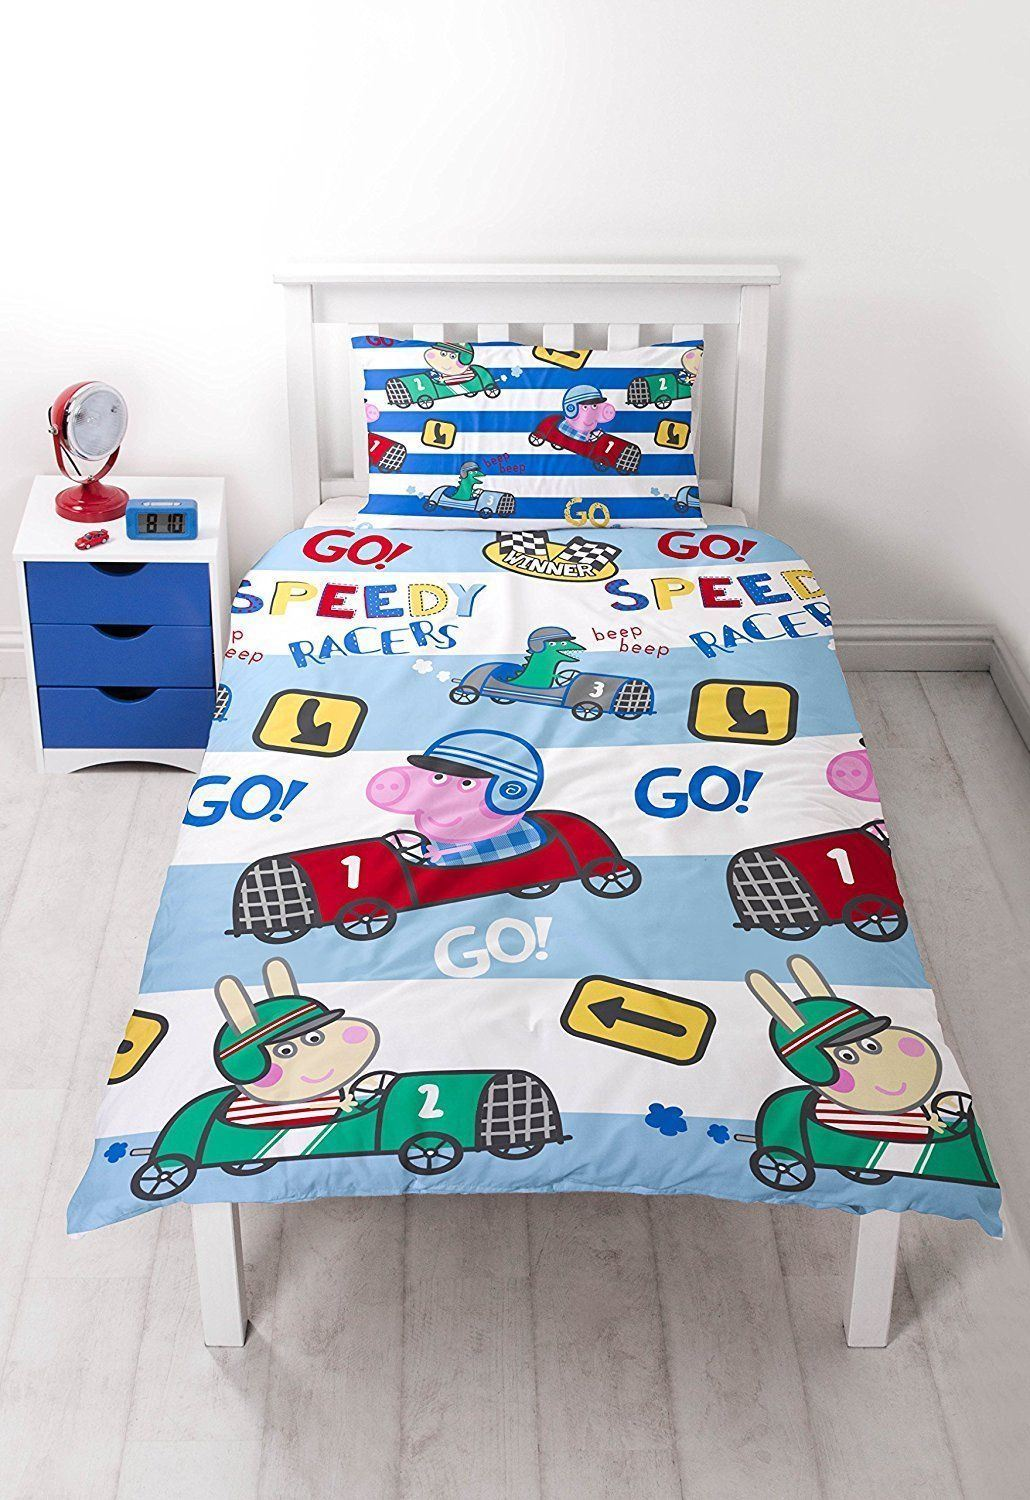 NEW-PEPPA-PIG-GEORGE-Bedding-Duvet-Quilt-Cover-Bed-Set-PIRATES-DINOSAUR-TRAIN-UK thumbnail 6